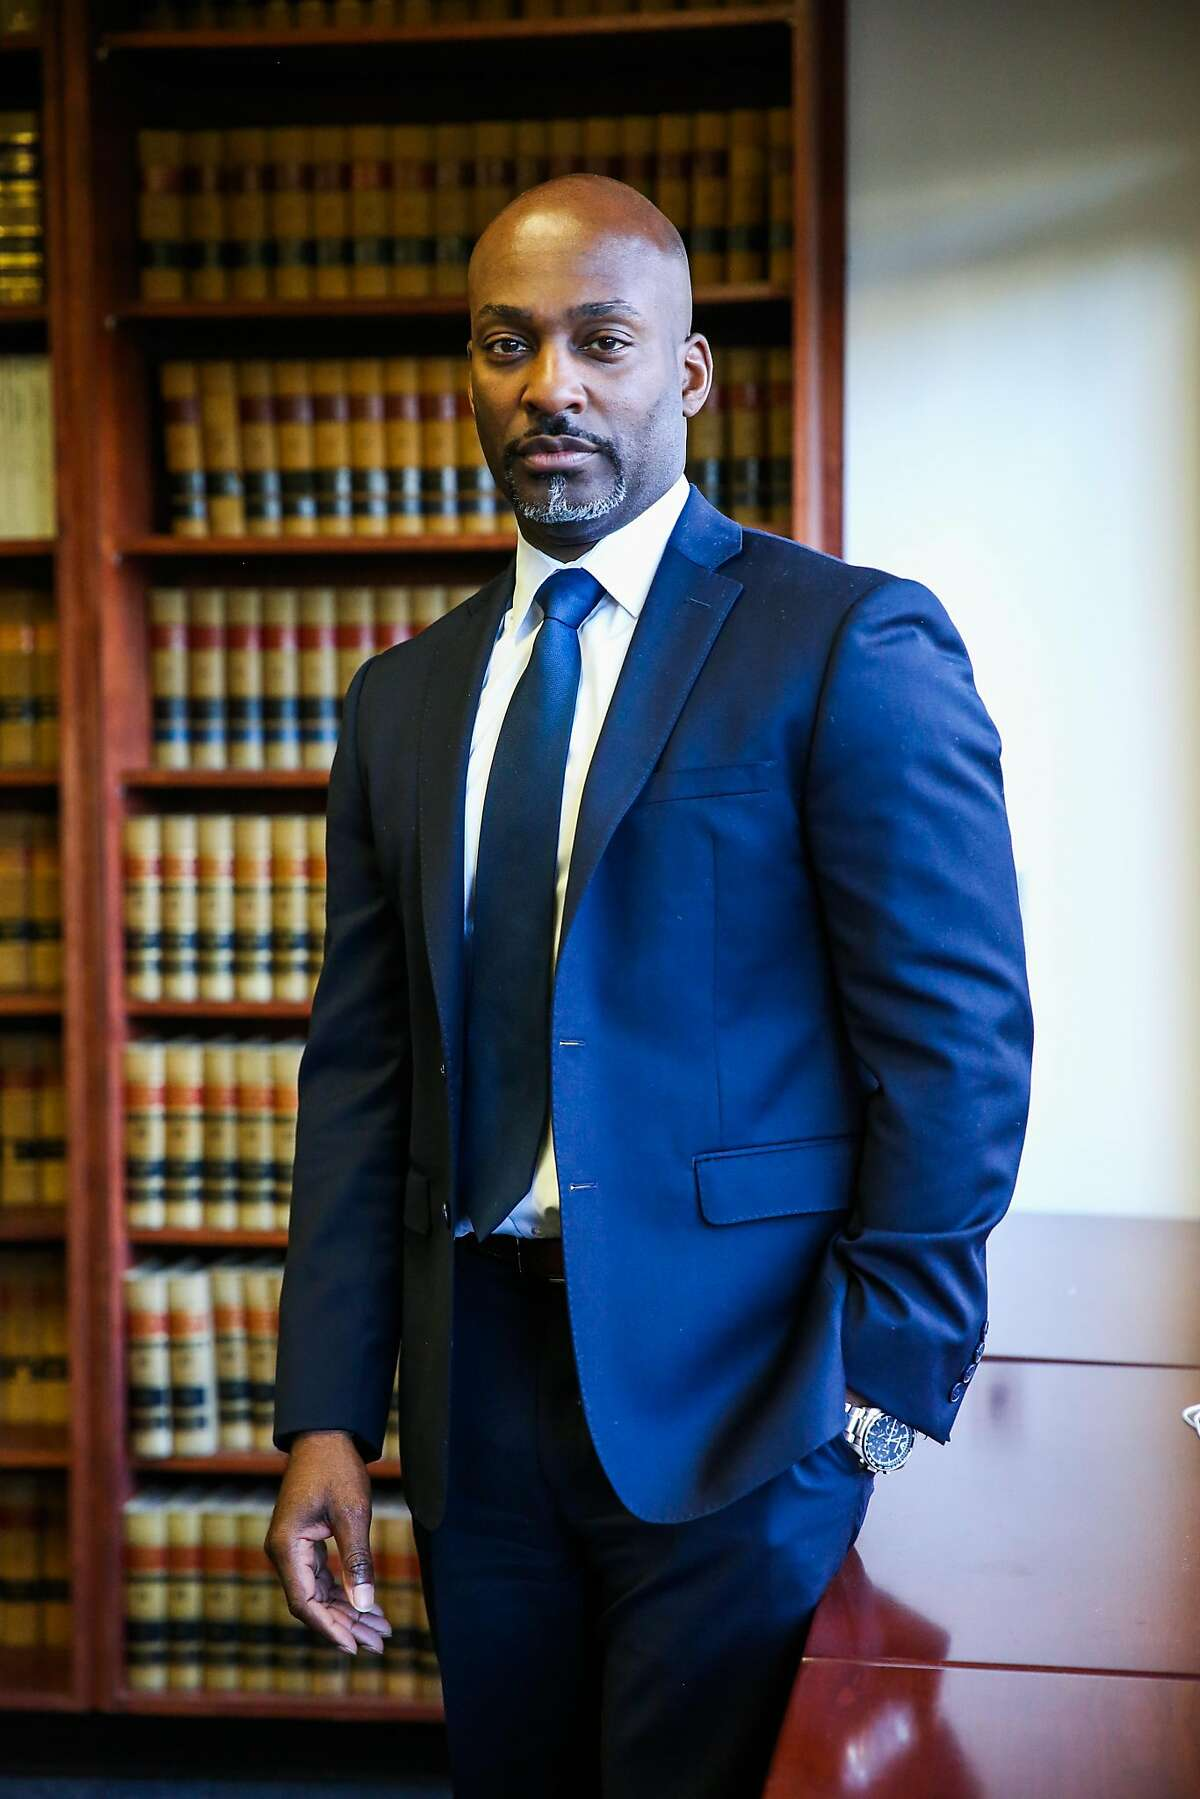 Alameda County Public Defender Brendon Woods stands for a portrait at theAlameda County Public Defender's office, in Oakland, California, on Tuesday, Nov. 29, 2016.